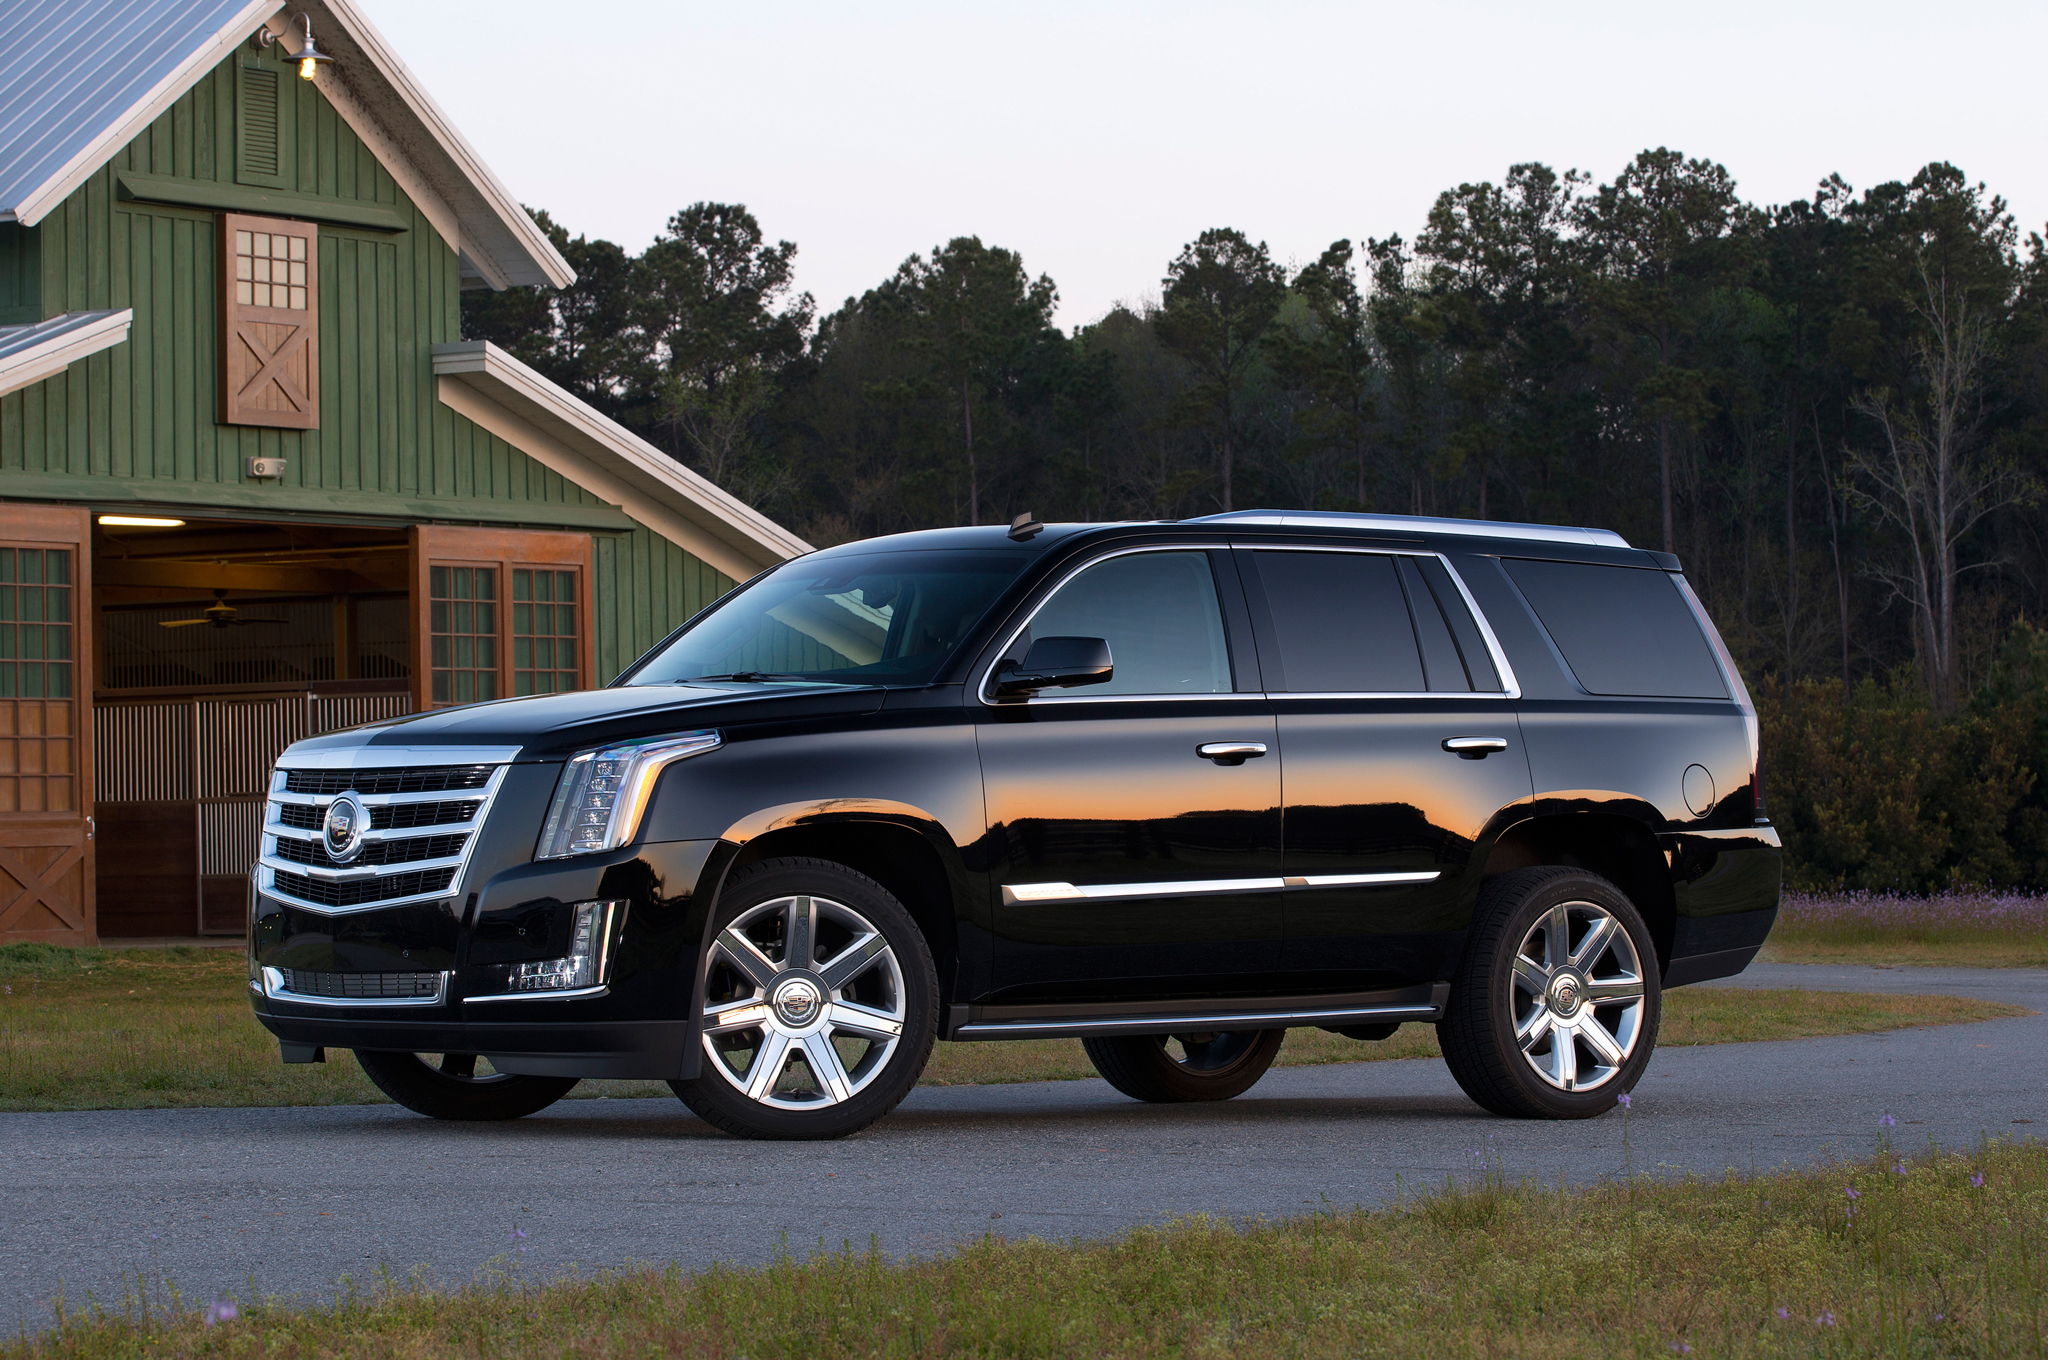 cadillac 2015 sports car. 2015 cadillac escalade side profile sports car